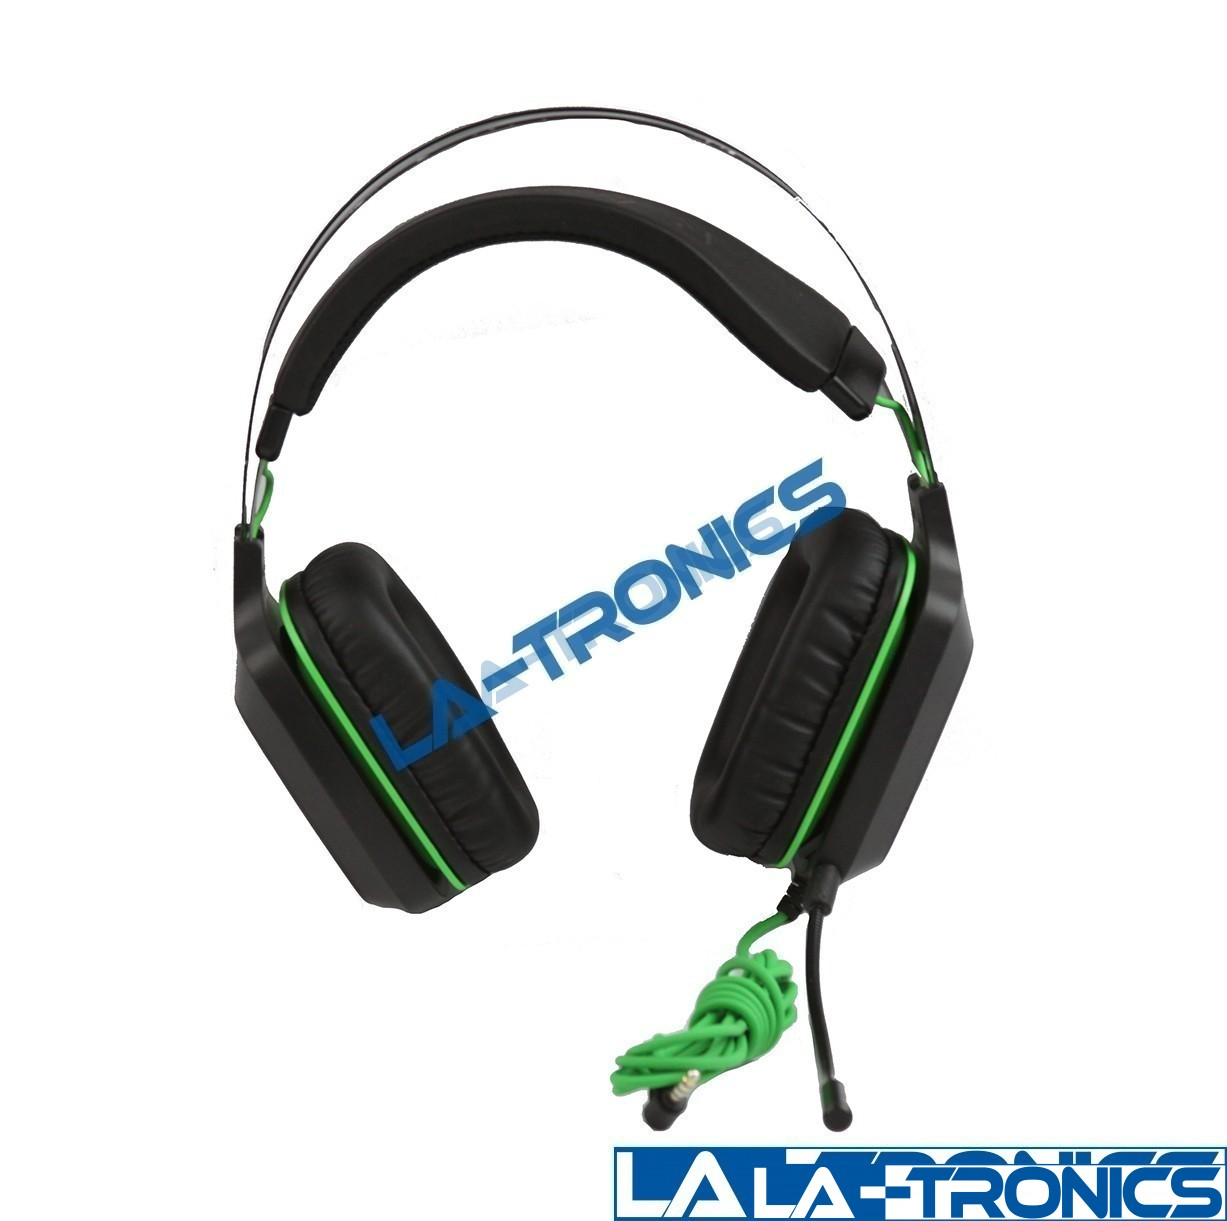 RAZER Electra V2 Wired 7.1 Gaming Headset for PC, Mac, PS4, Xbox One, Nintendo